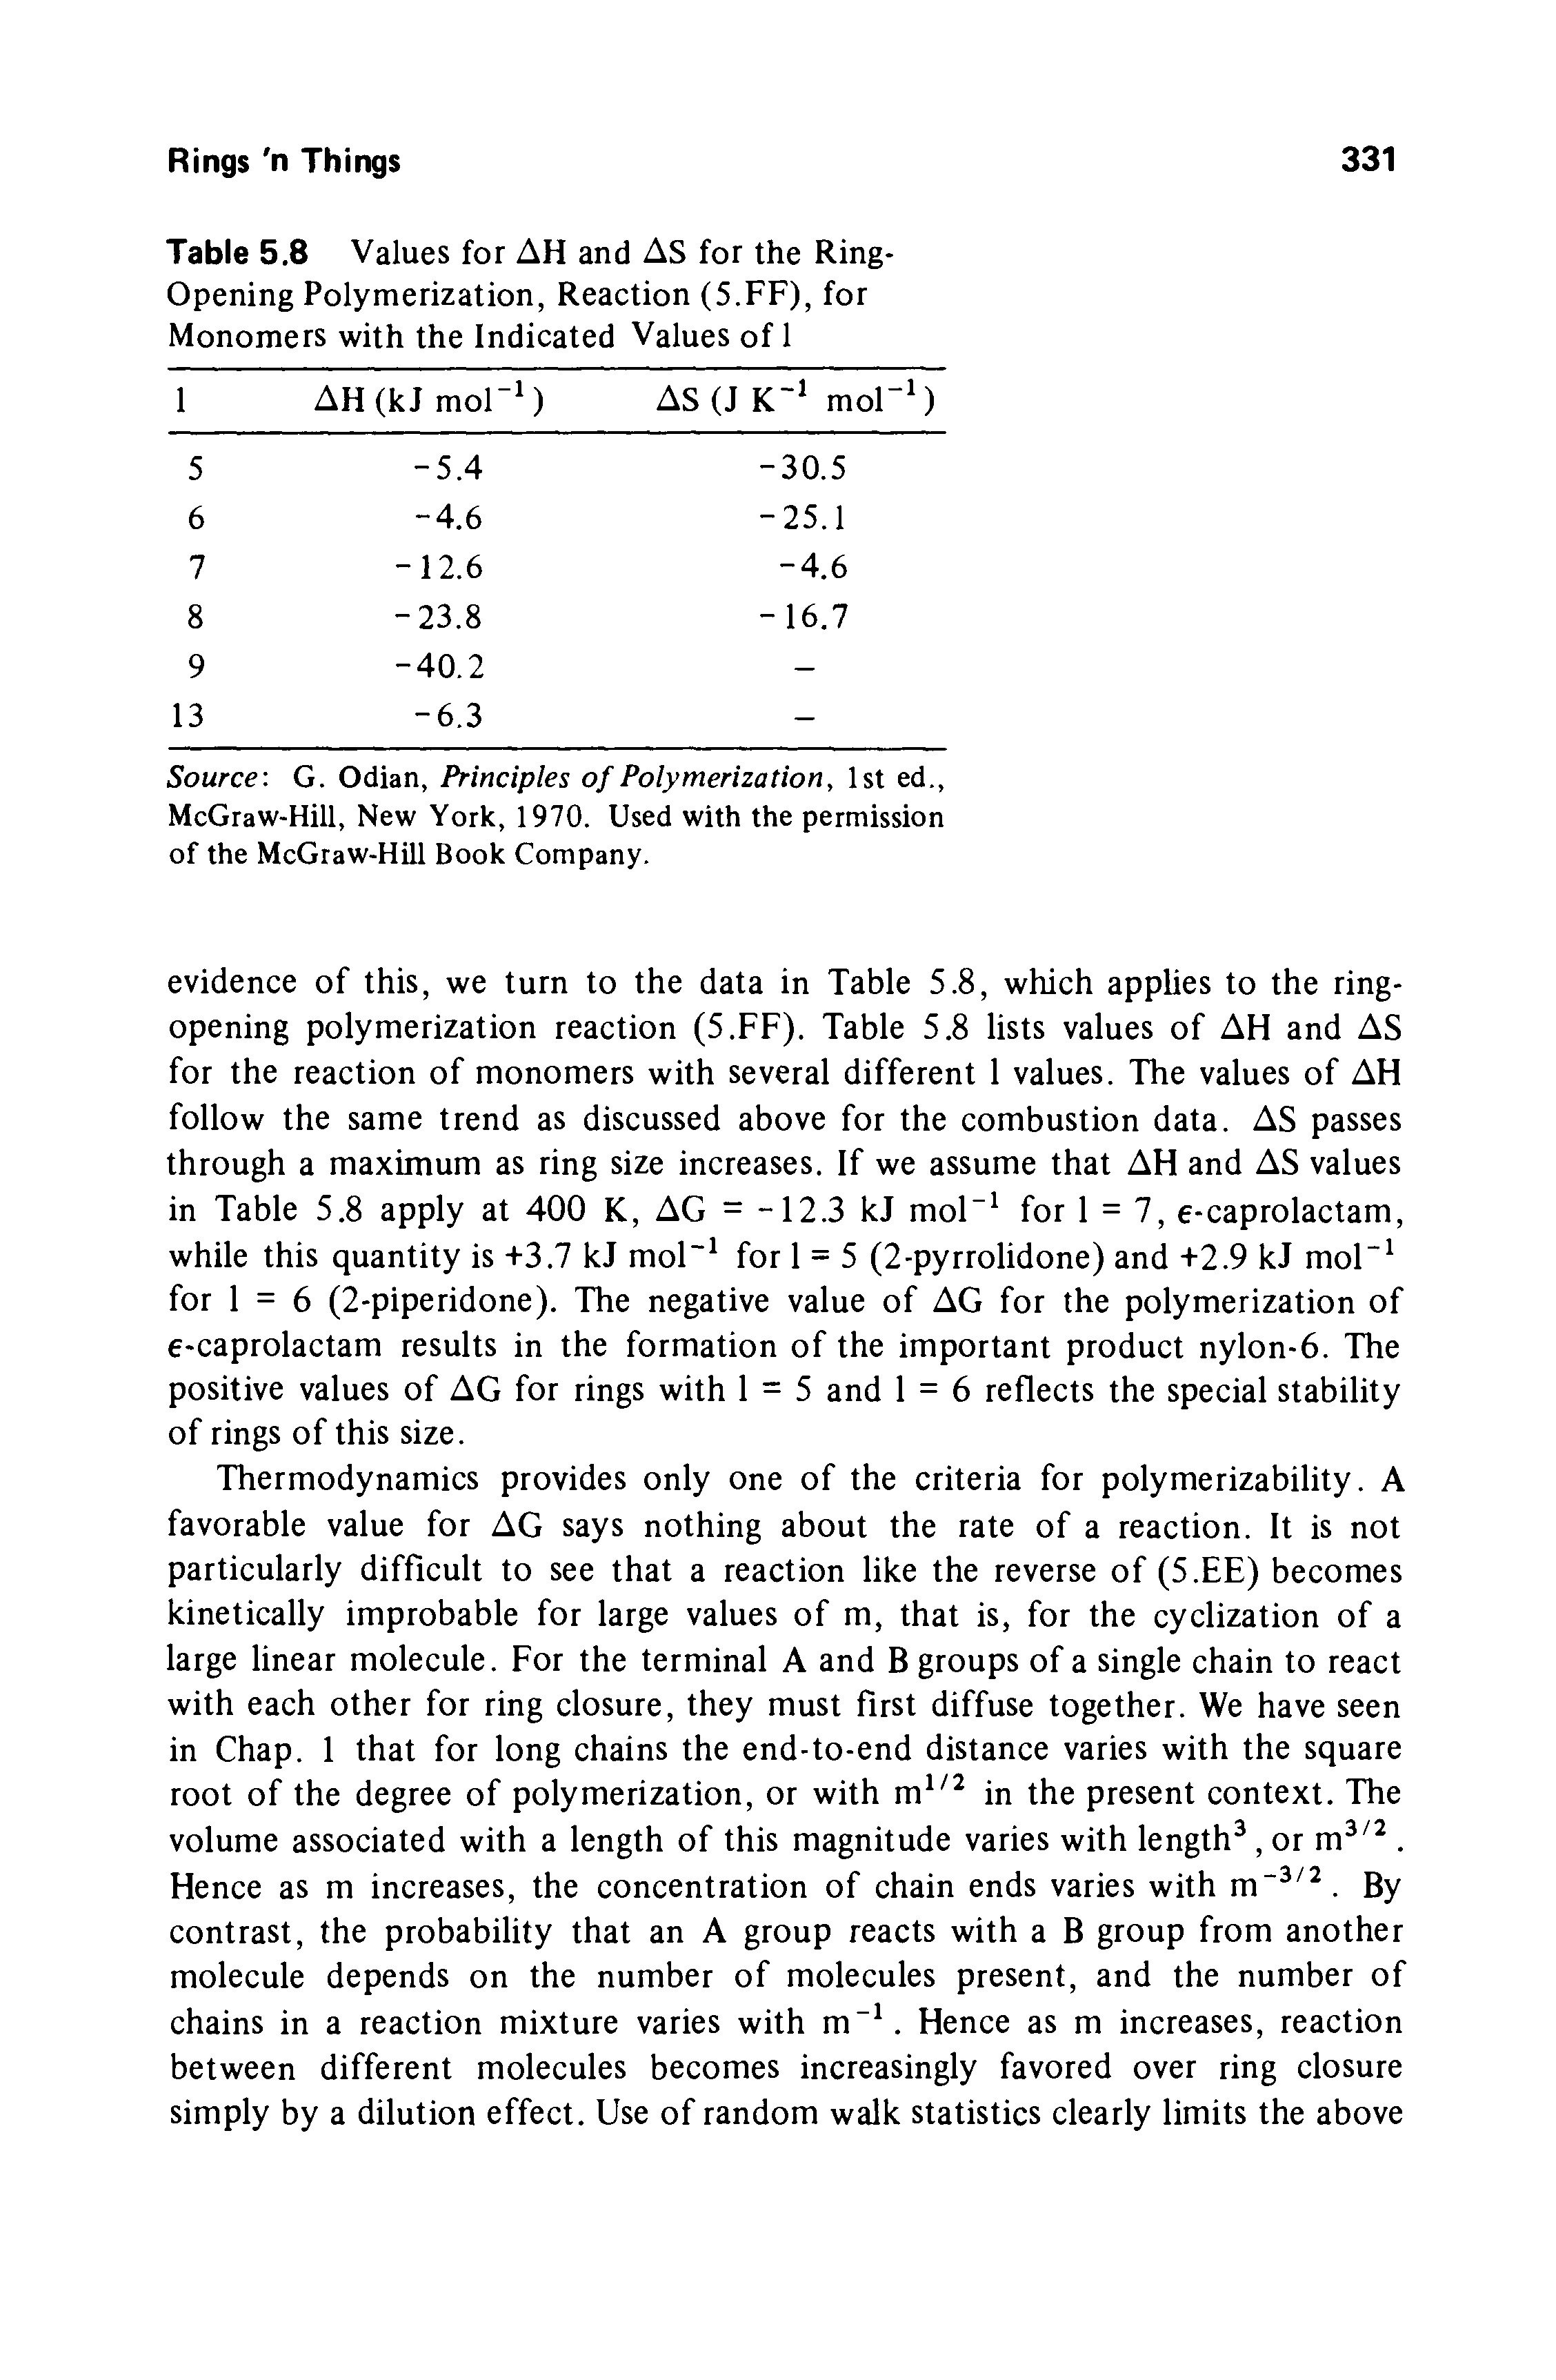 "Table 5.8 Values for AH and AS for the <a href=""/info/ring_opening_polymerization"">Ring-Opening Polymerization</a>, Reaction (5.FF), for Monomers with the Indicated Values of 1"